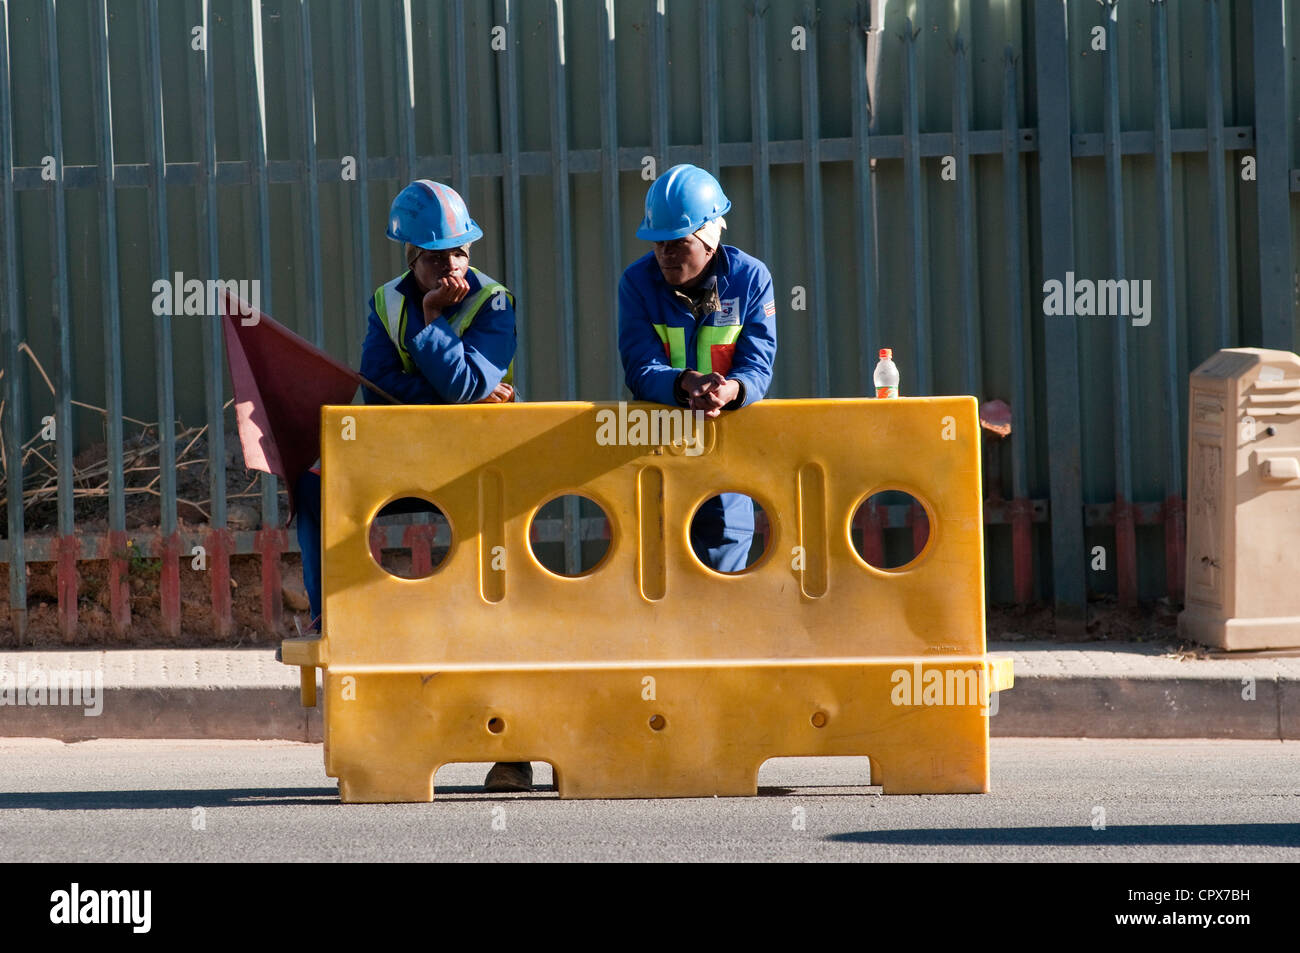 Two construction workers standing next to a traffic barrier - Stock Image